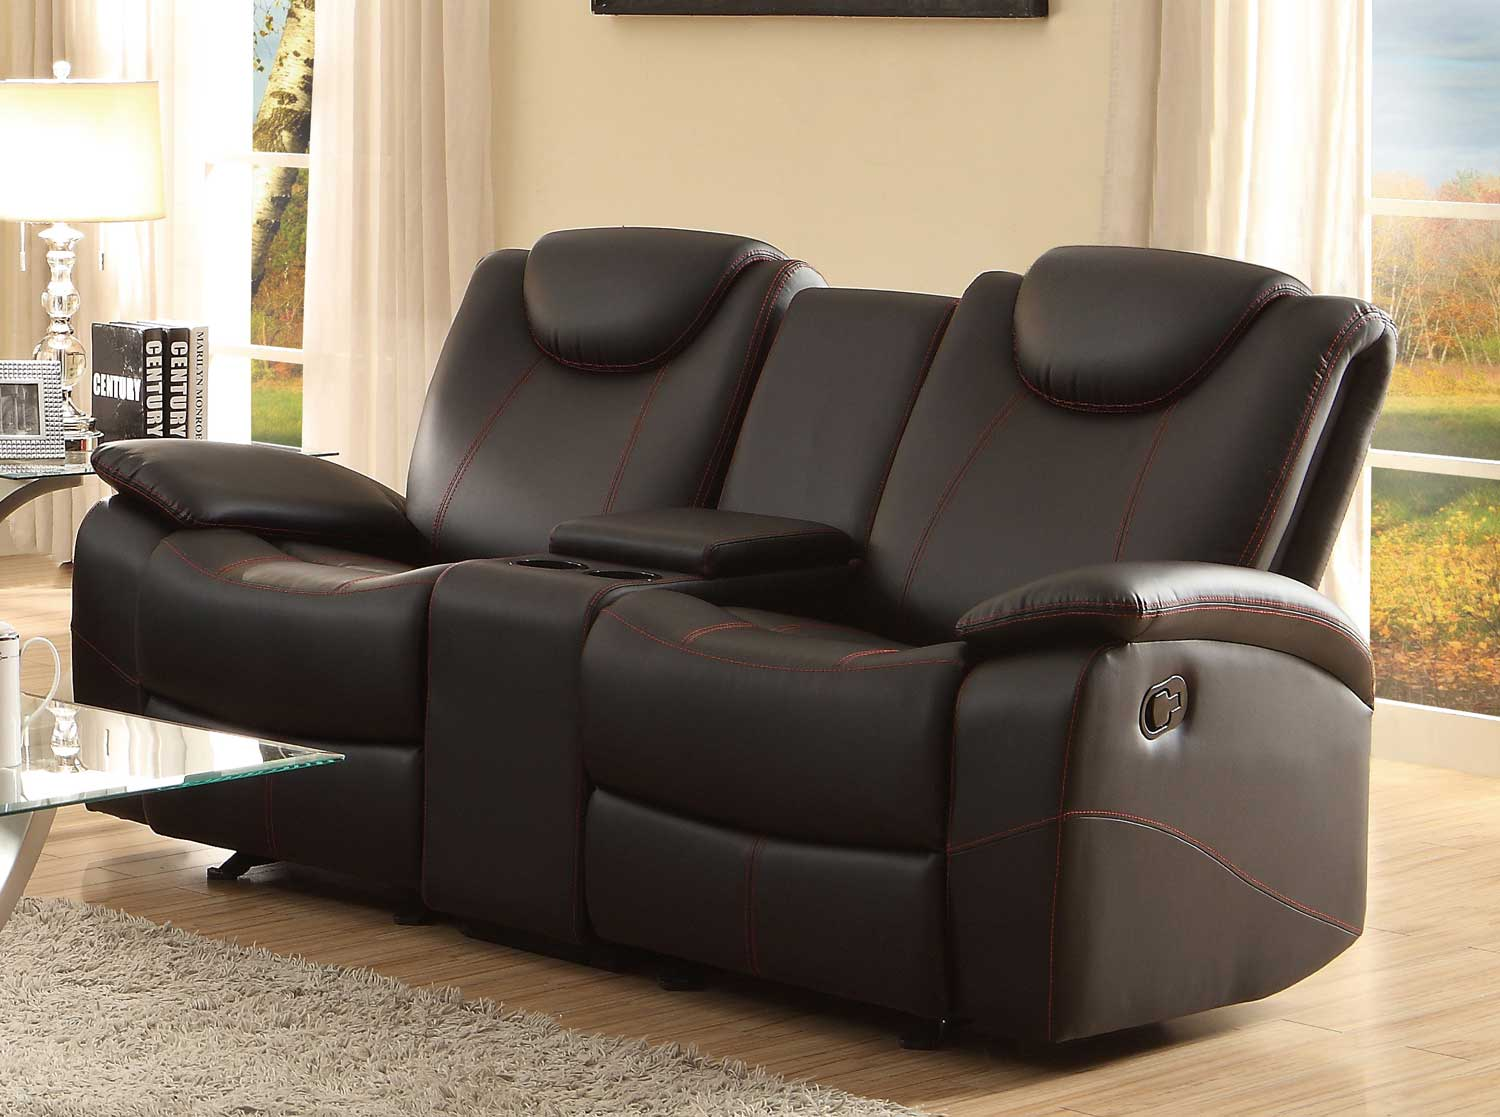 Homelegance Talbot Double Glider Reclining Love Seat with Center Console - Black Bonded Leather